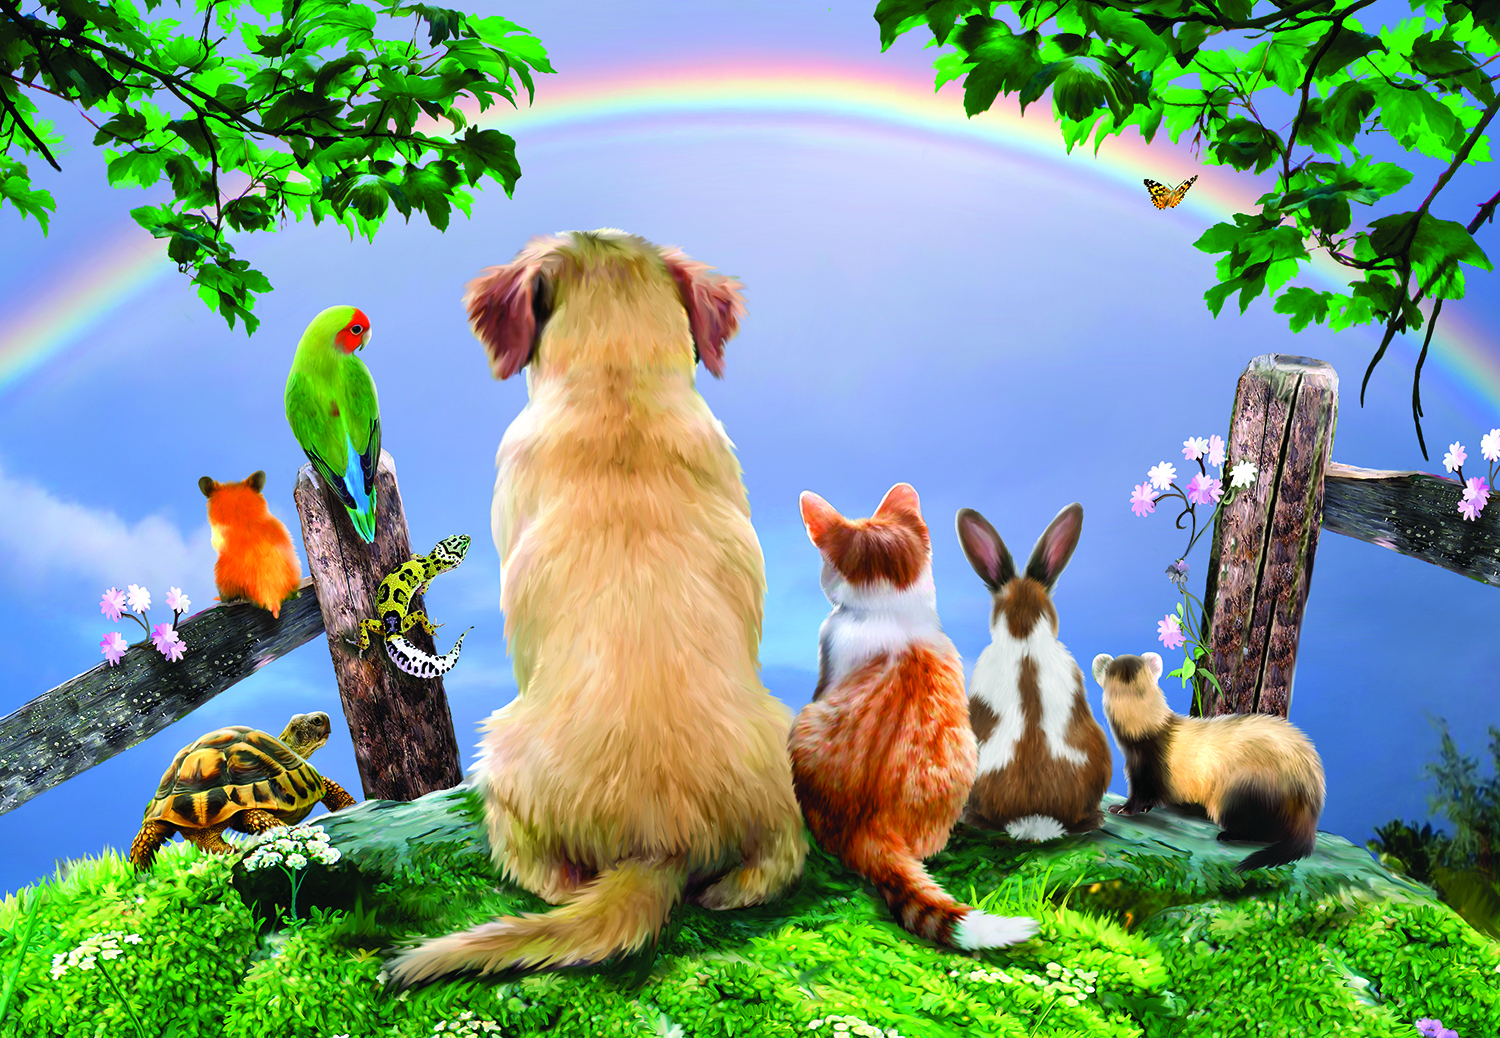 Over the Rainbow 500 pc Jigsaw Puzzle by SunsOut